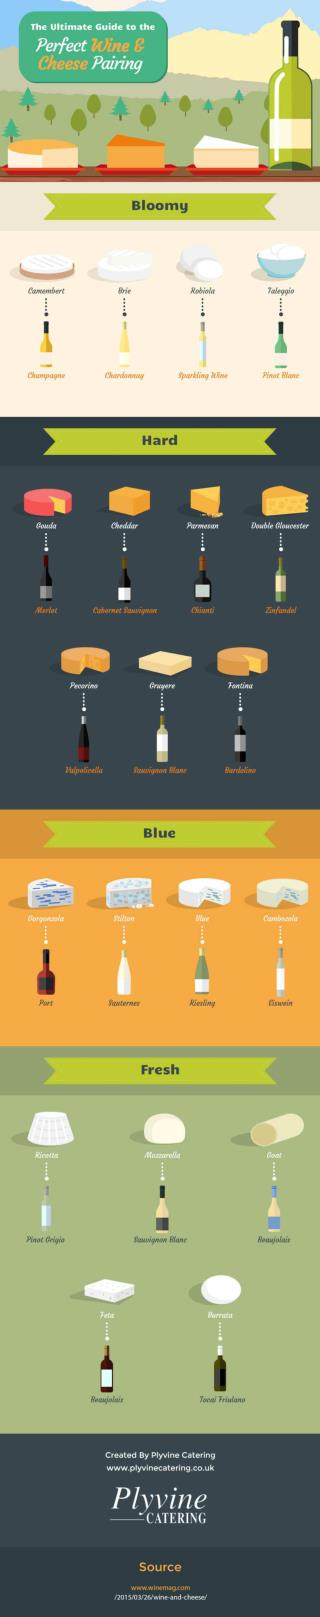 The Ultimate Guide to the Perfect Wine & Cheese Pairing